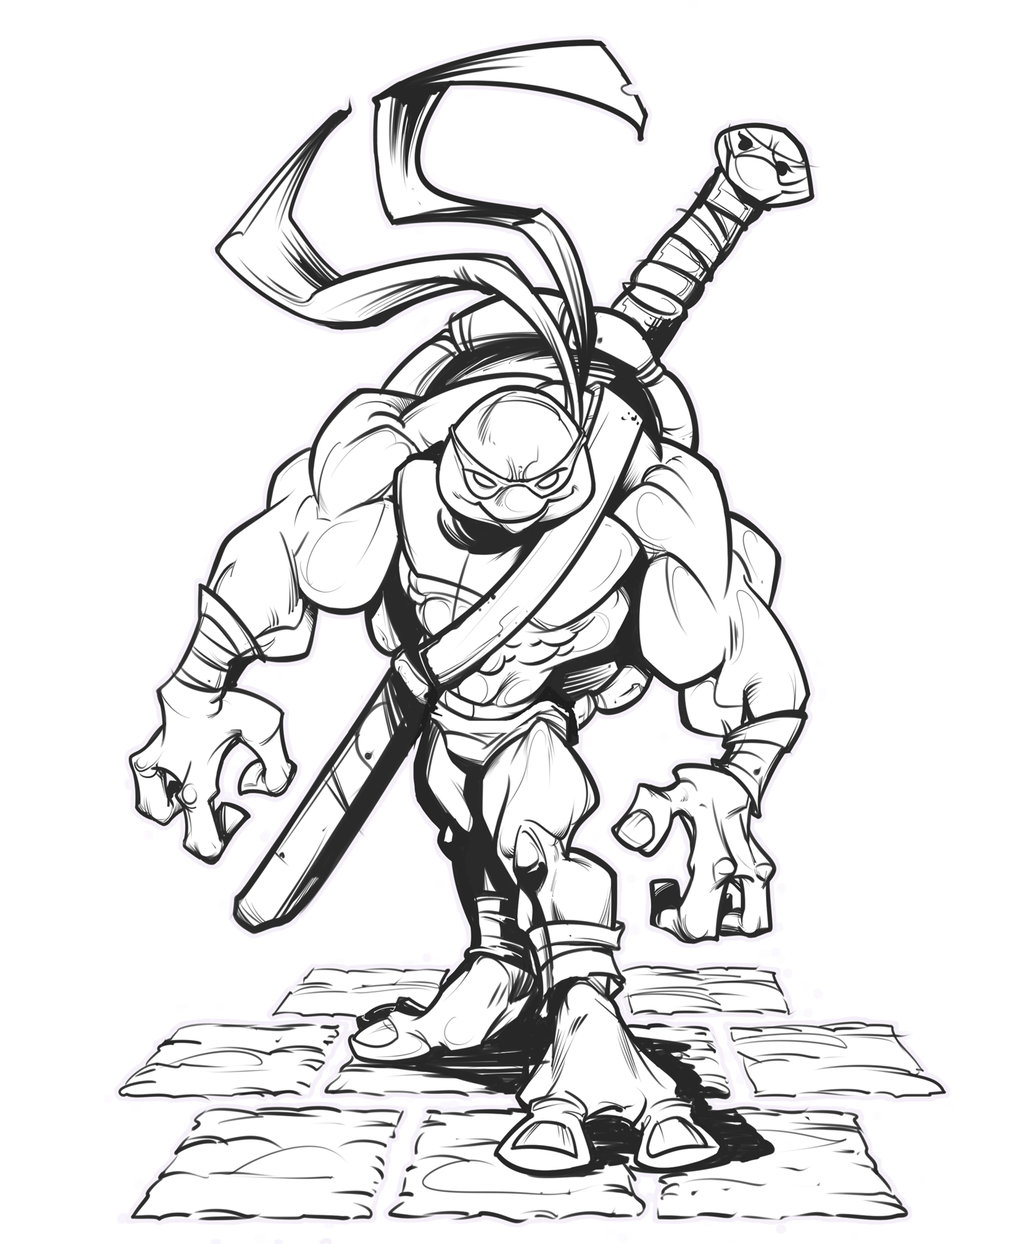 Easy Ninja Drawing At Getdrawings Com Free For Personal Use Easy